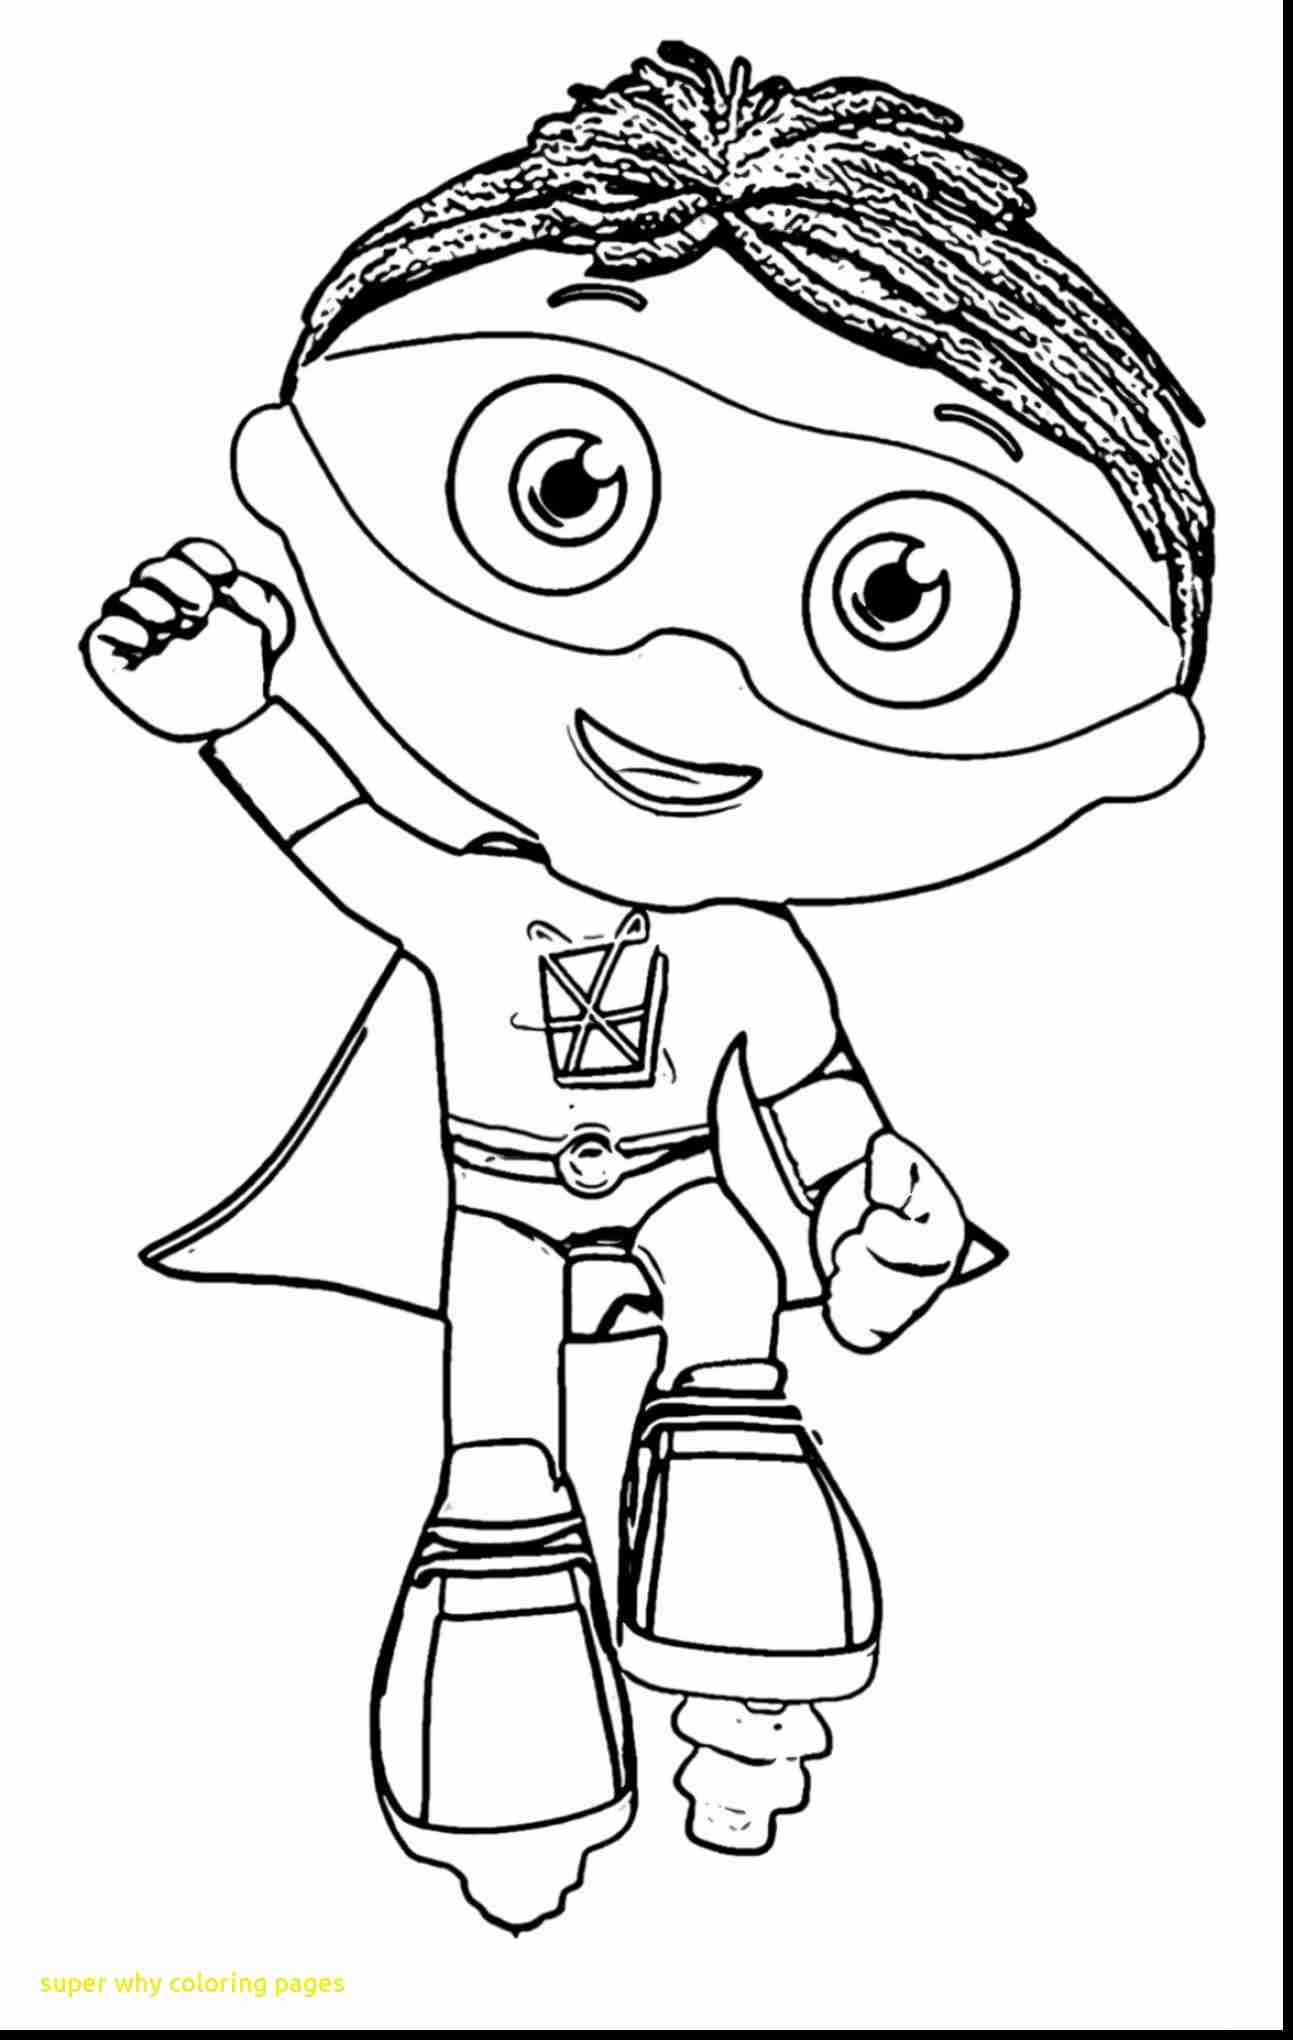 1293x2040 Super Why Coloring Pages With Best Prepossessing Olegratiy